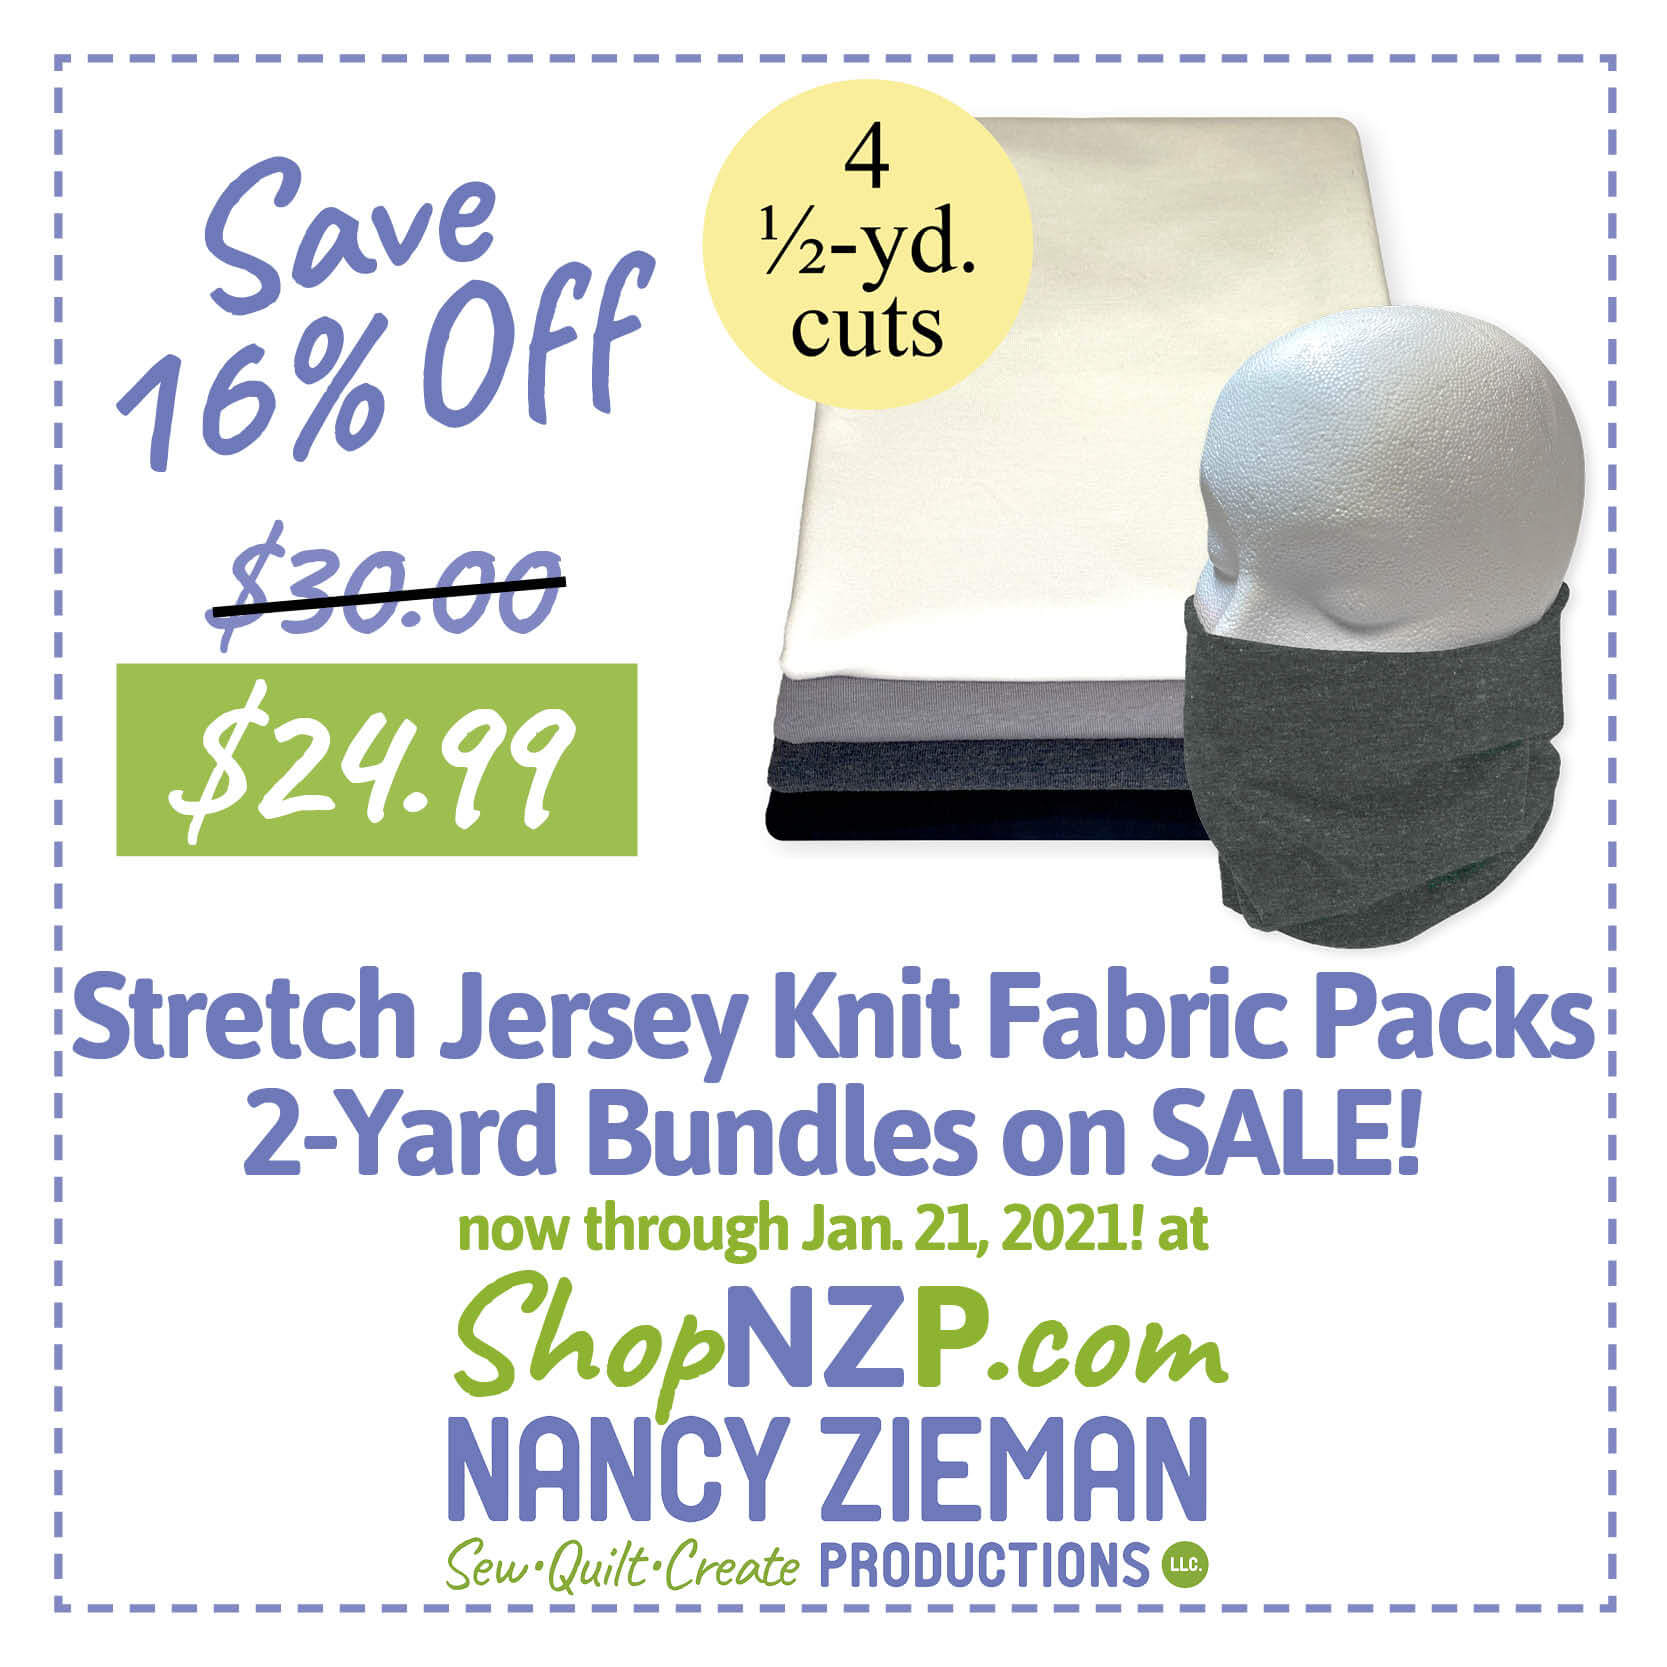 Knit Fabric Sale at Nancy Zieman Productions at ShopNZP.com Save up to 16 Percent Off NEW! Stretch Jersey Knit Fabrics